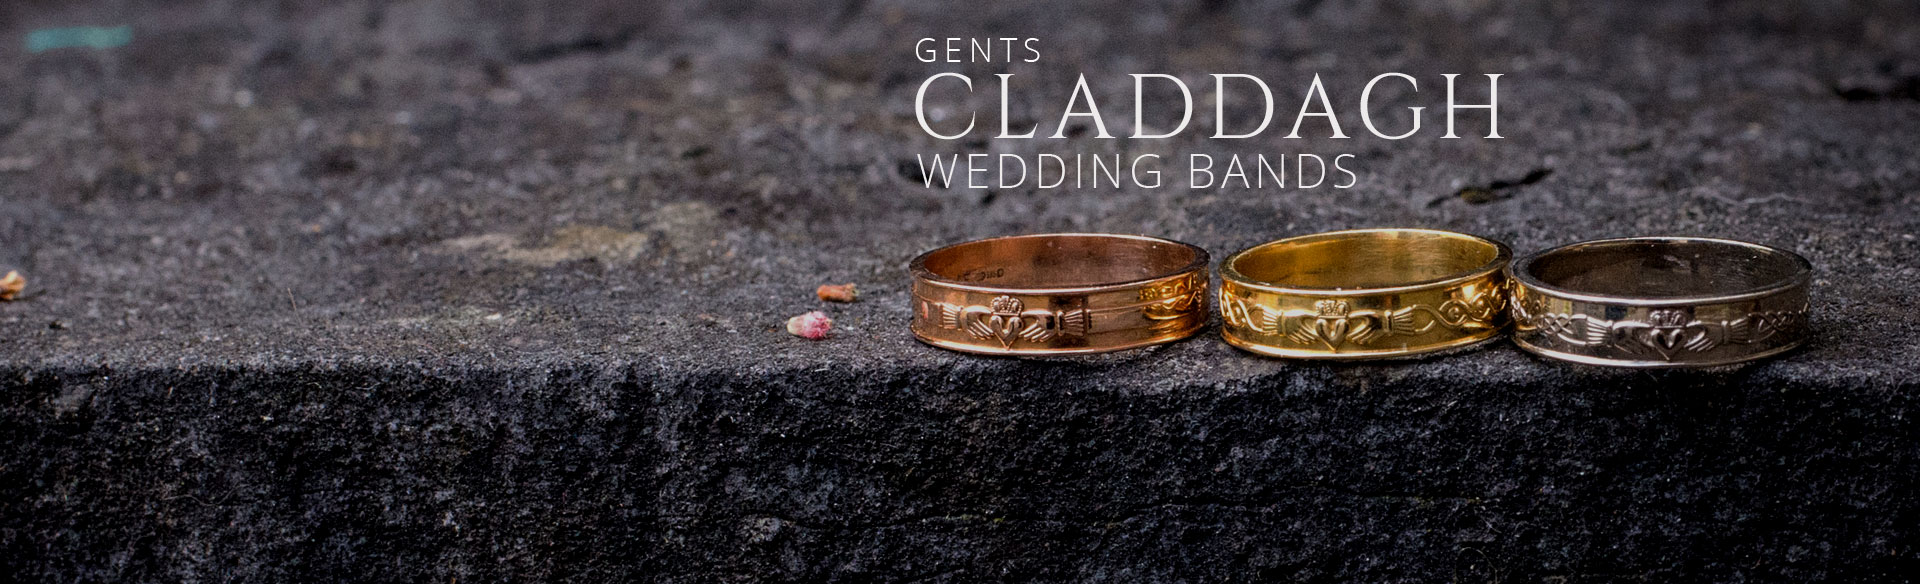 Gents Claddagh